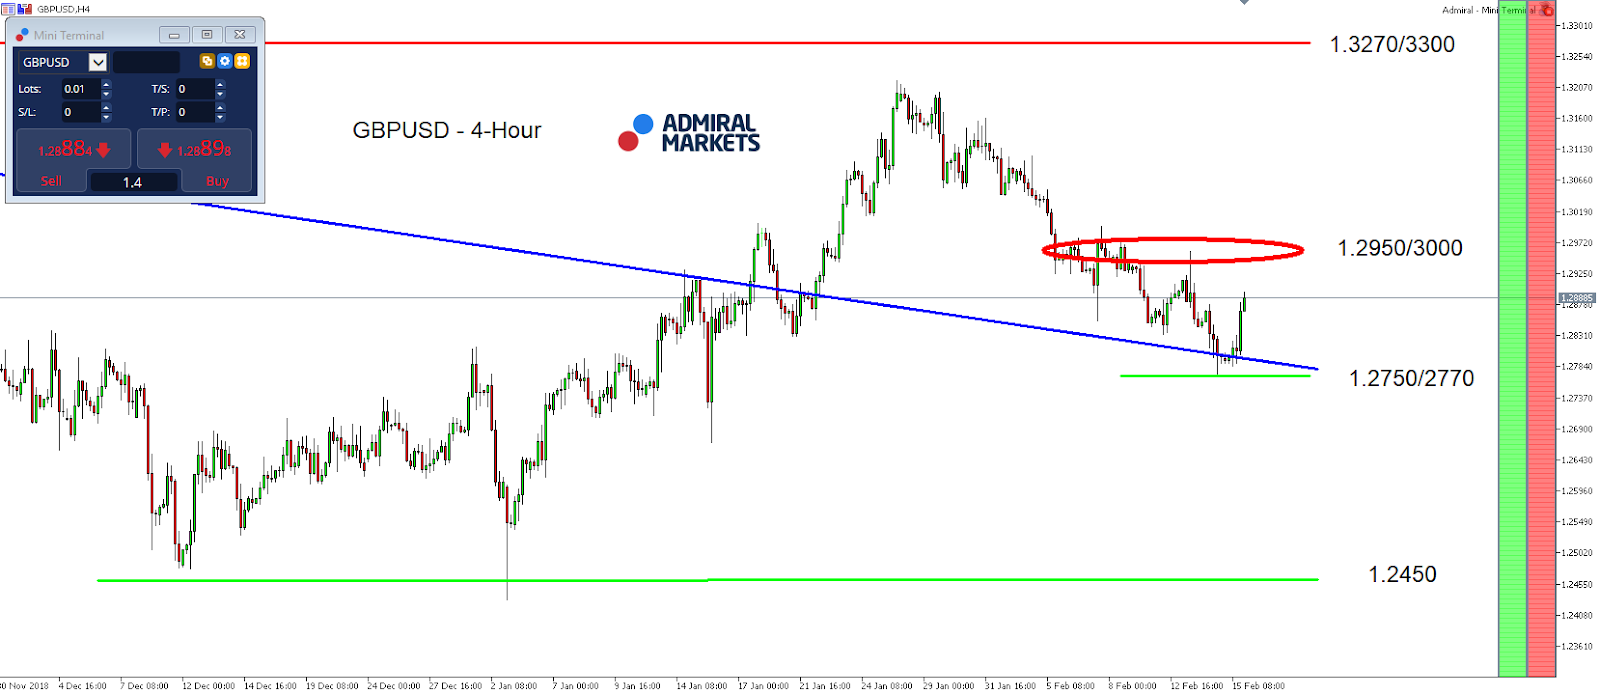 GBP/USD 4-hour chart